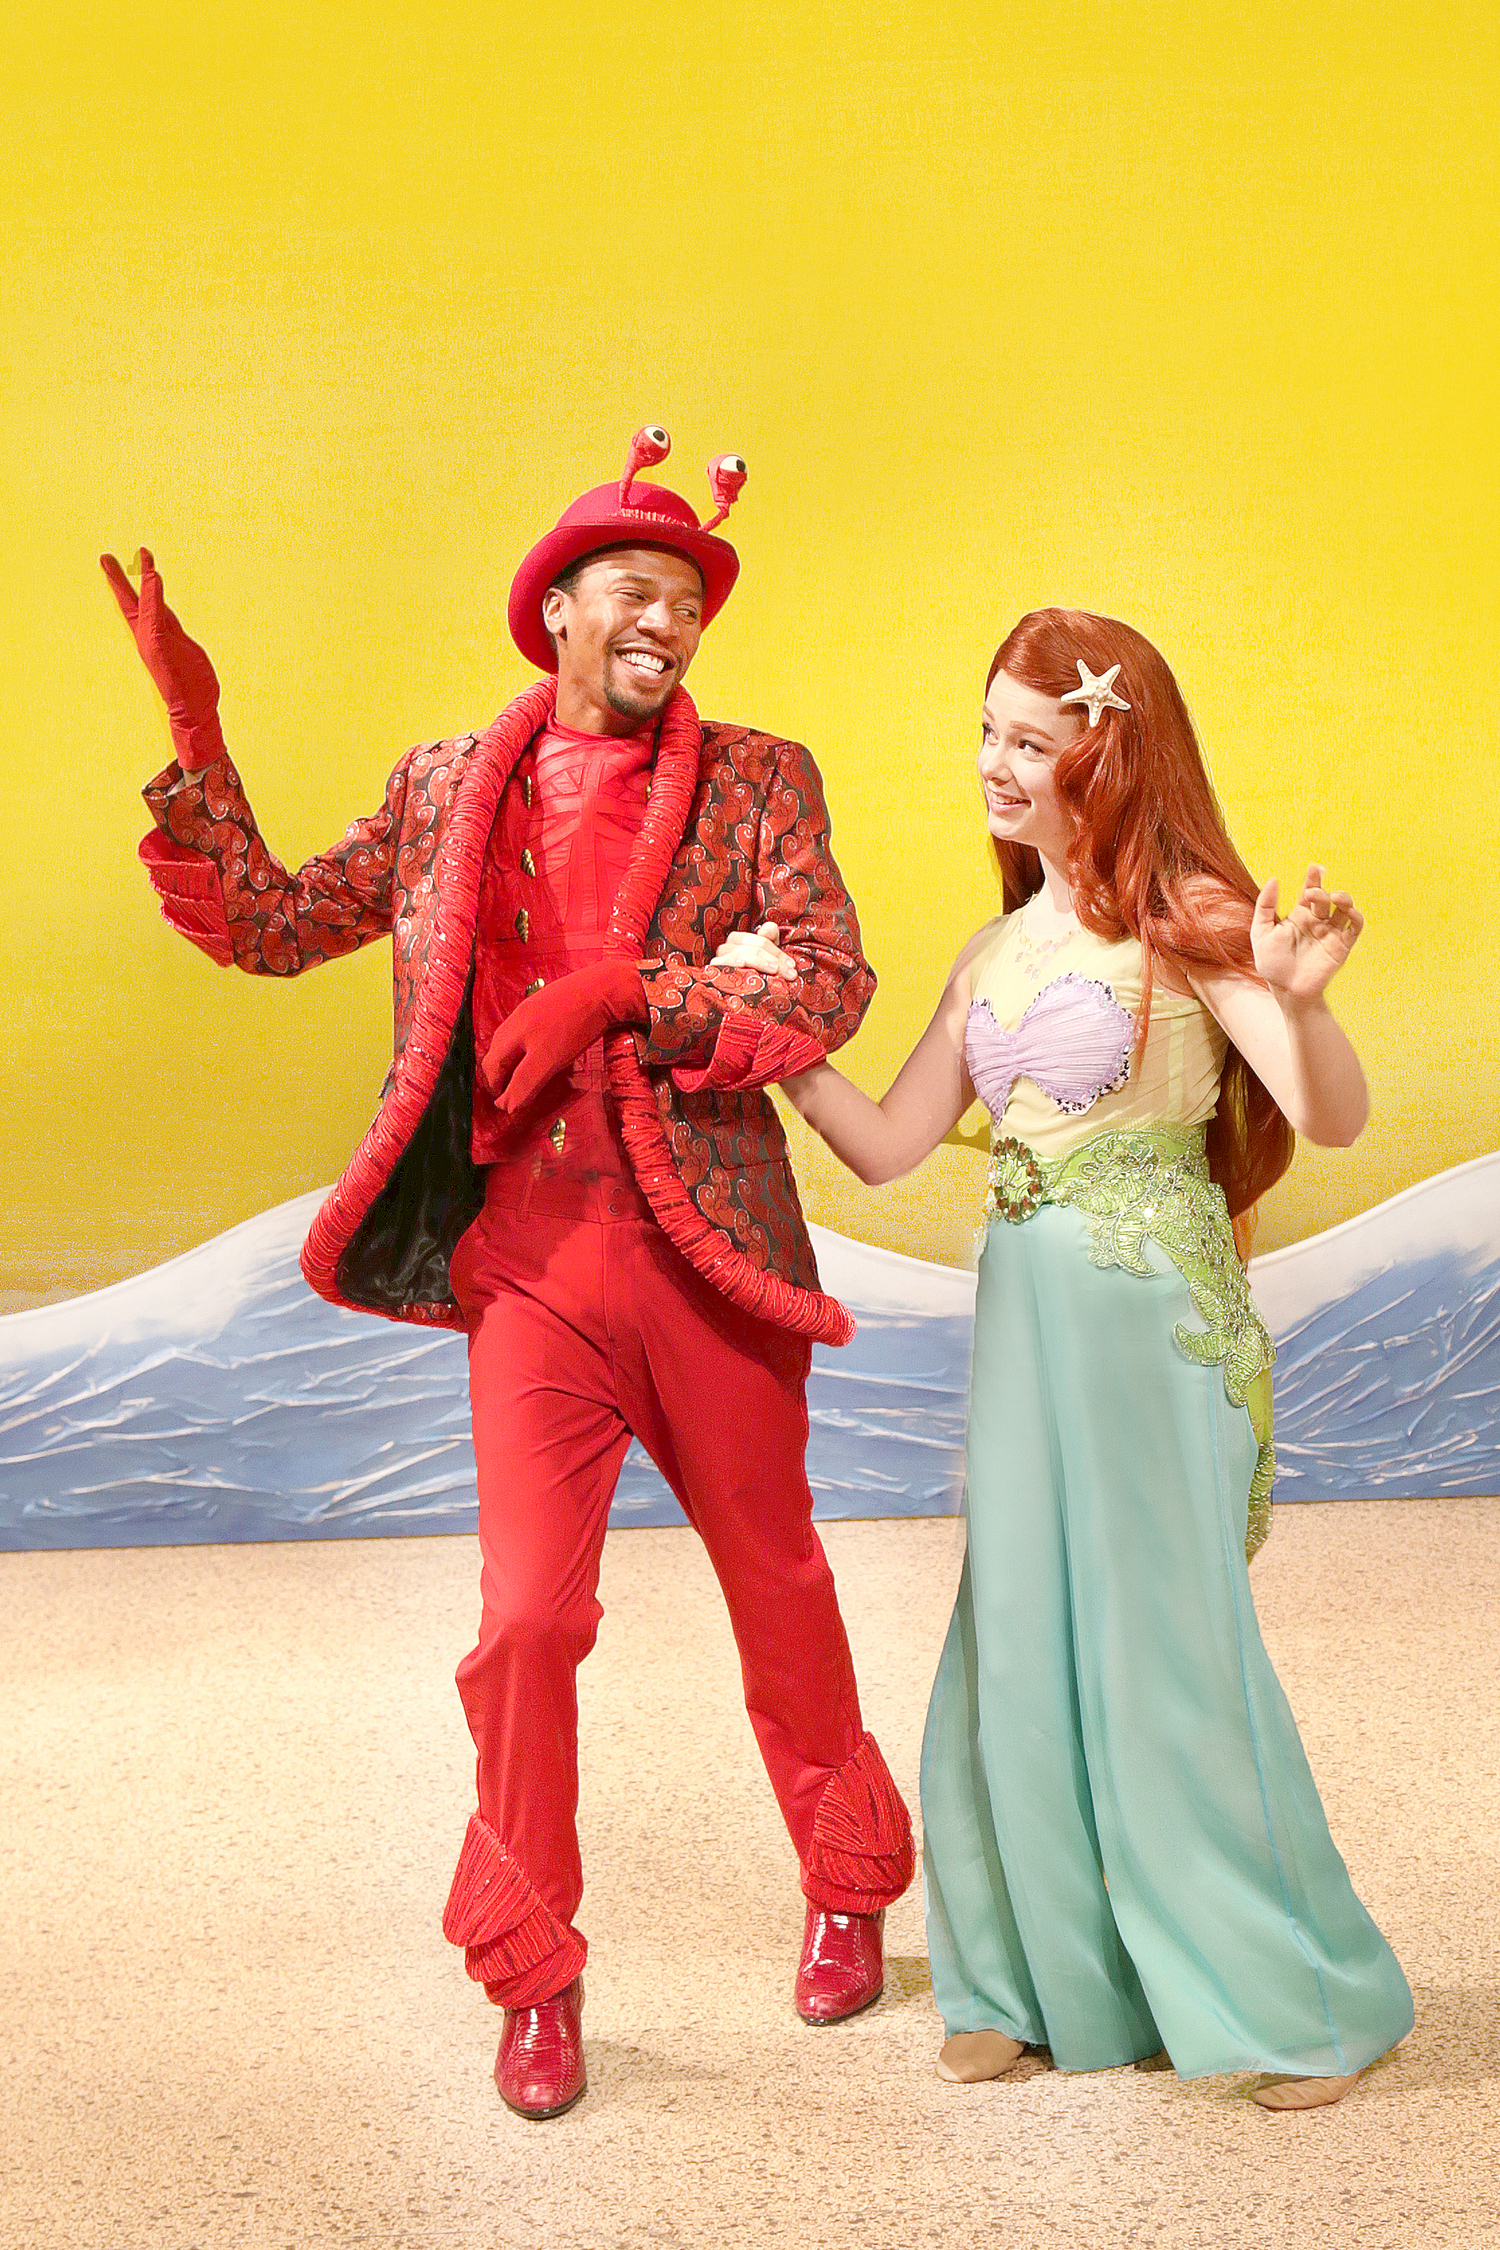 BWW Review: DISNEY'S THE LITTLE MERMAID at The Des Moines Playhouse